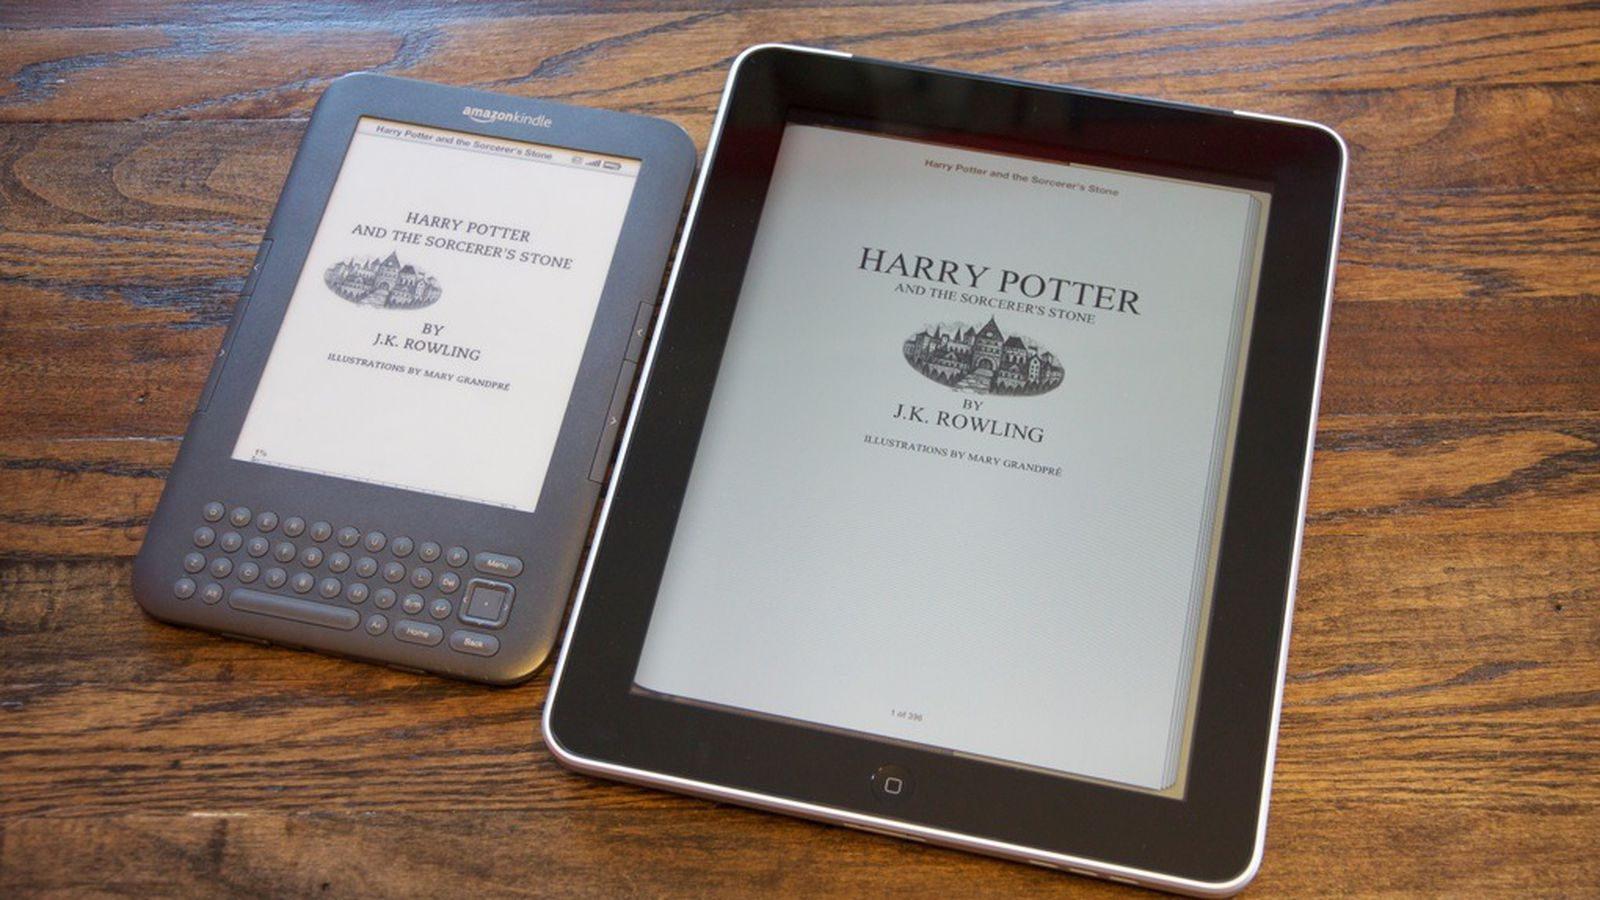 where to download harry potter ebooks for free